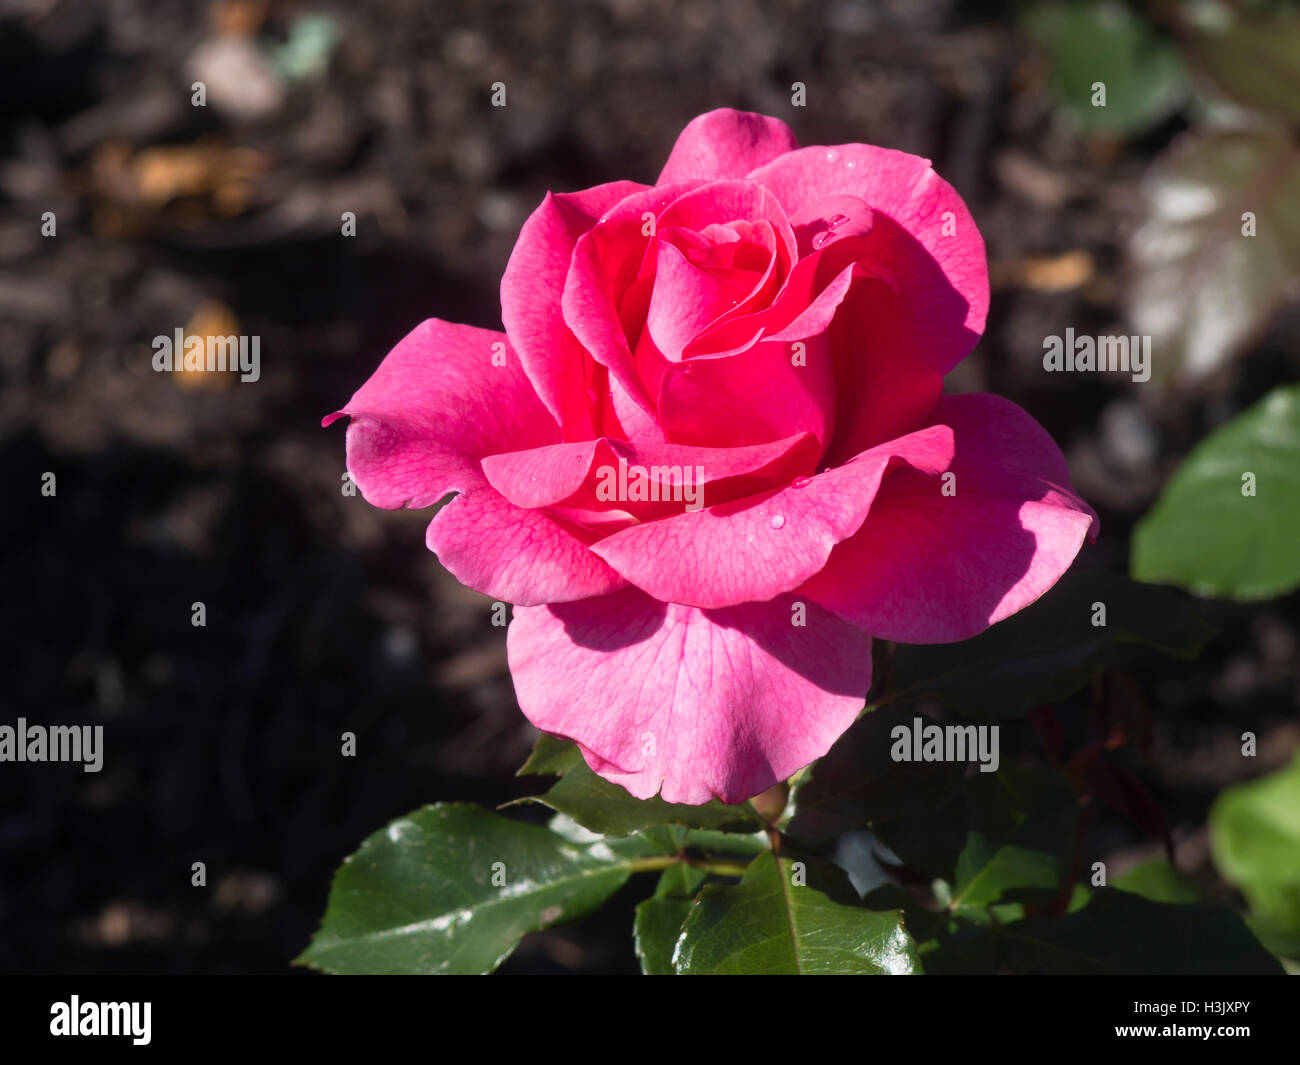 Single pink filled rose in bloom, Romanze Tantau 1984, photographed in Frognerparken rose garden, Oslo Norway - Stock Image